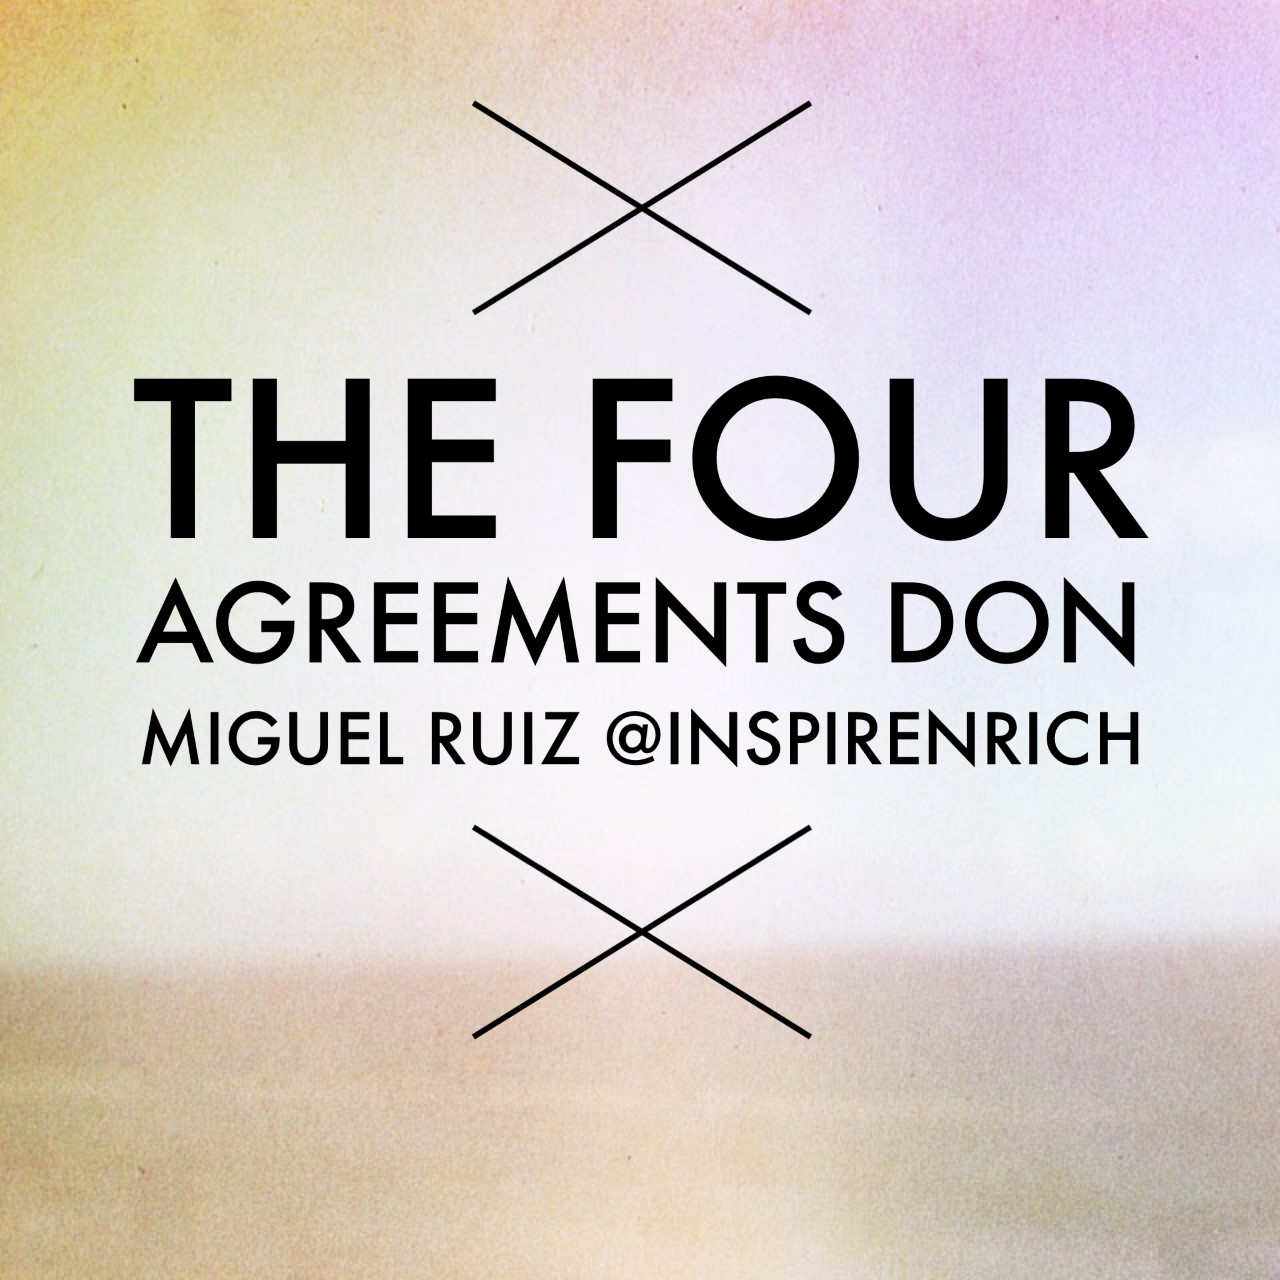 The Four Agreements Don Miguel Ruiz Inspirenrich